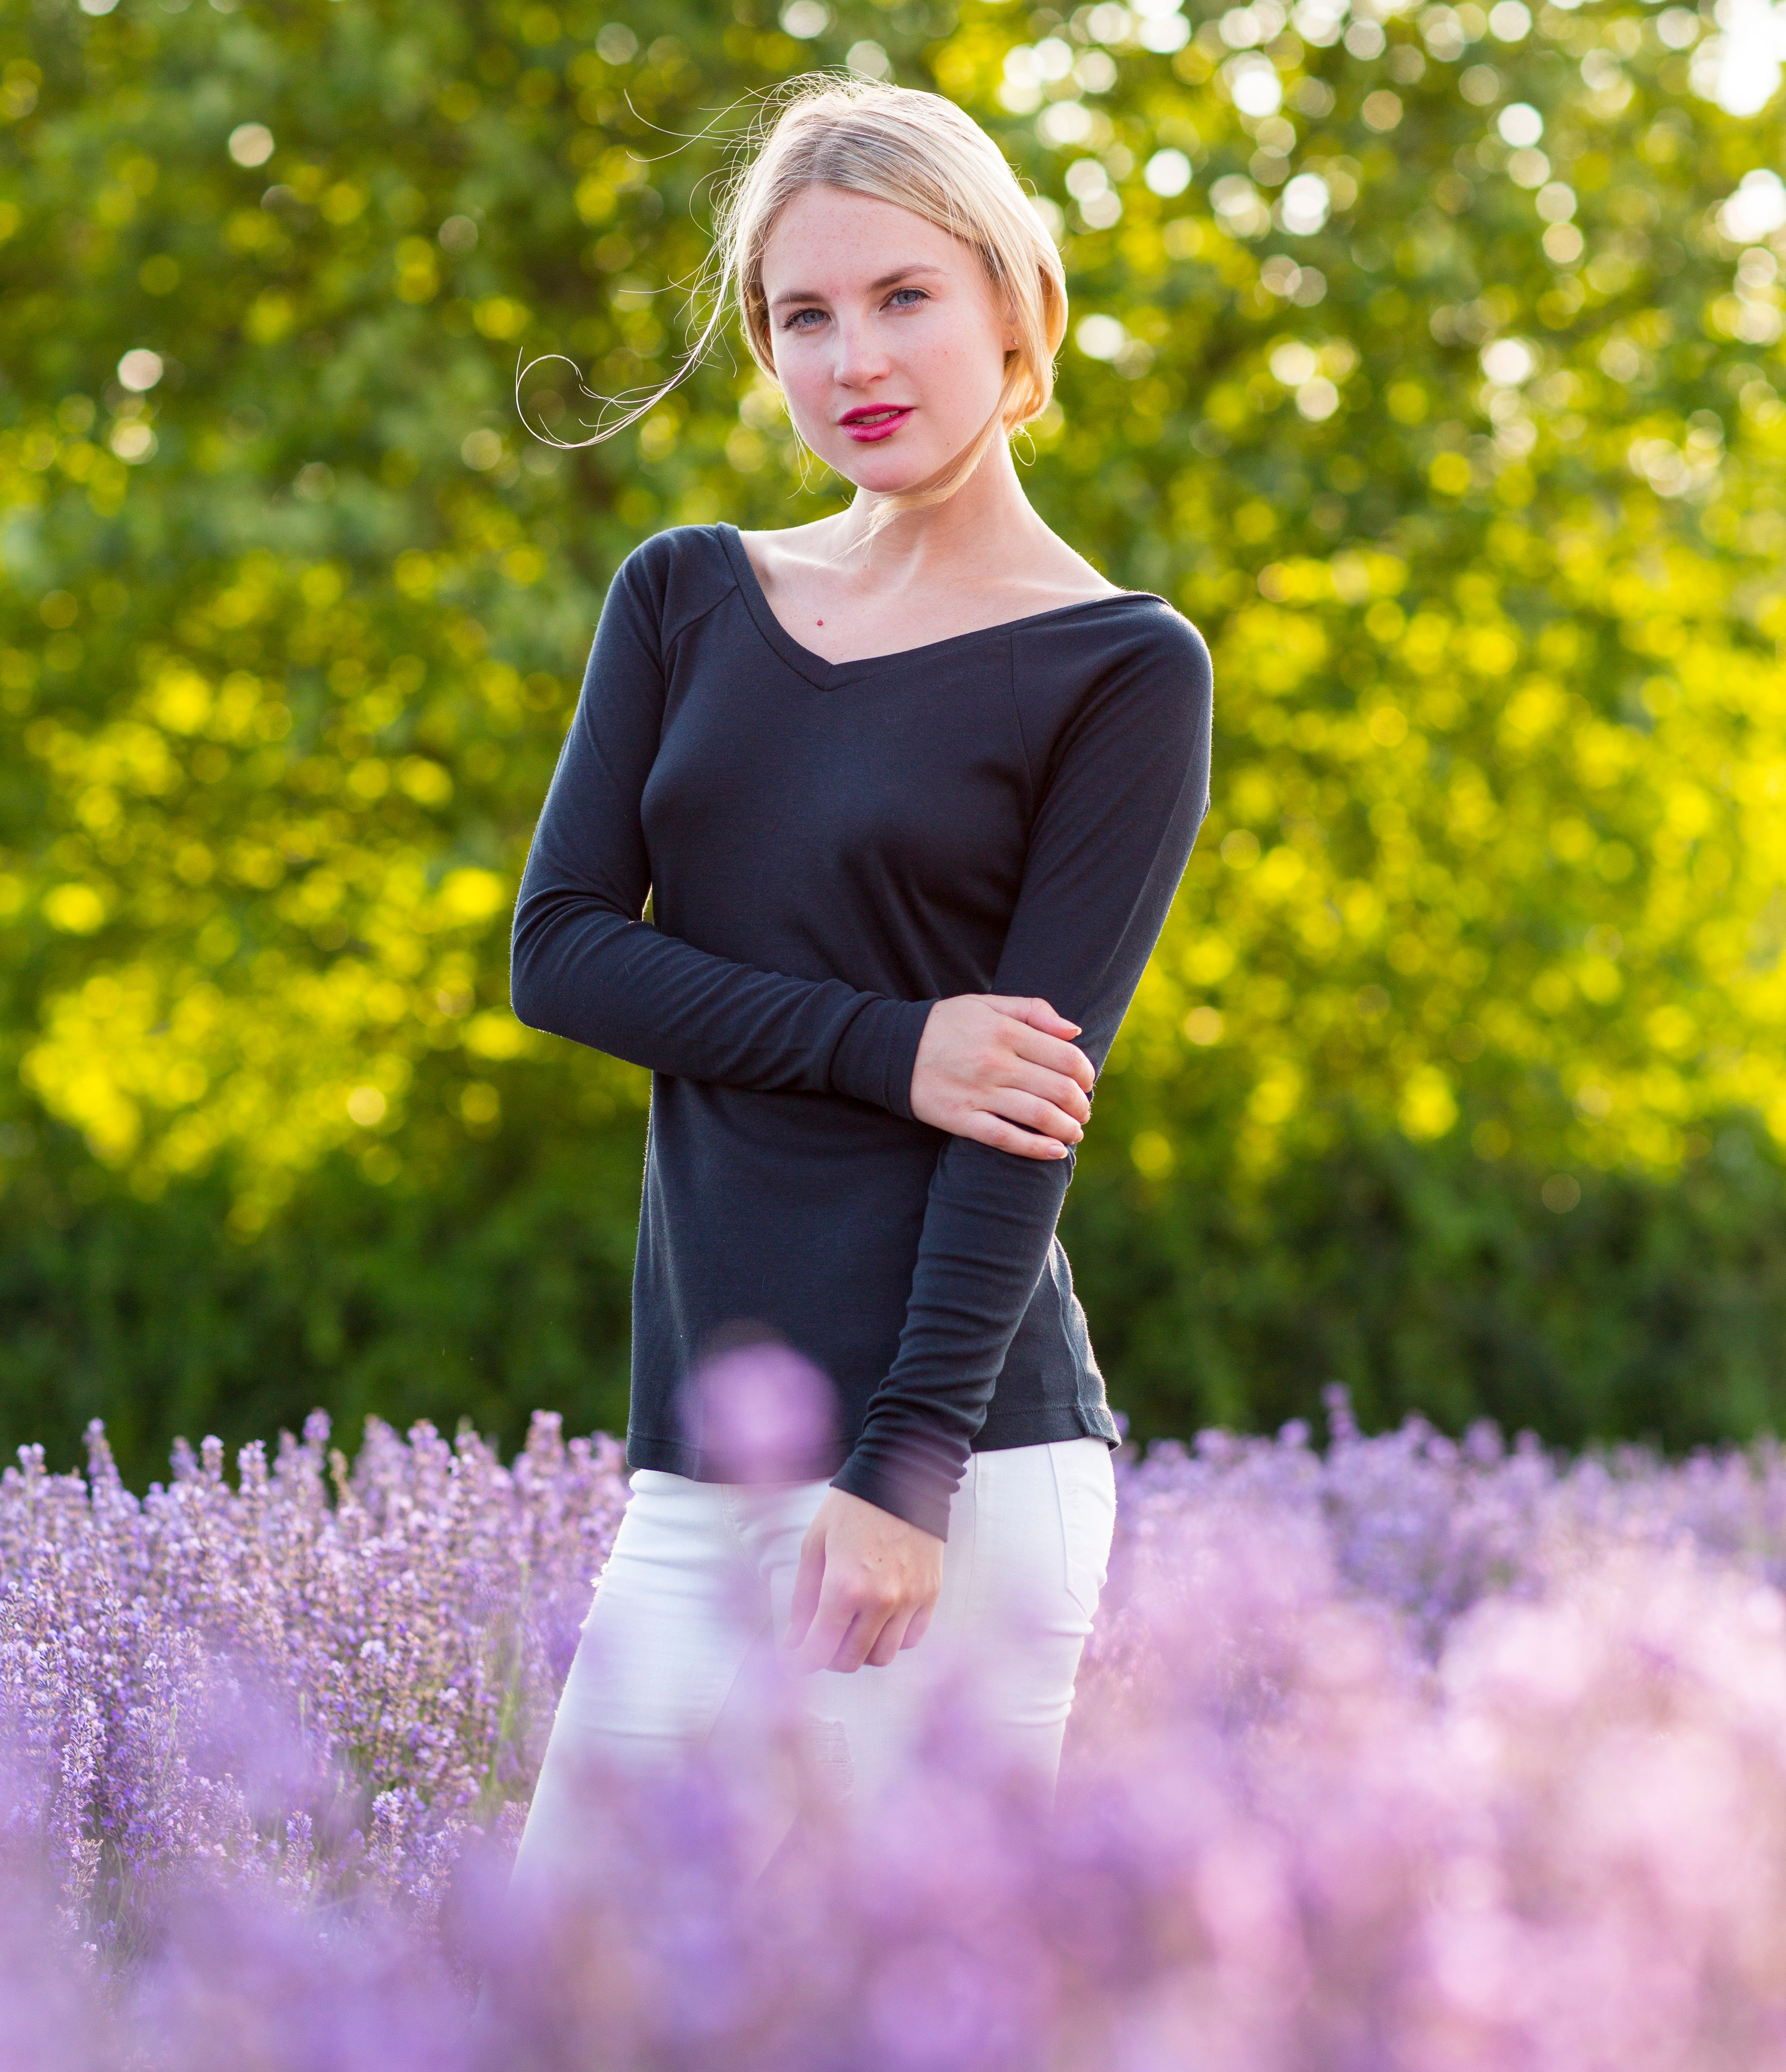 Lavender Hill Clothing - beautiful basics for every woman's wardrobe